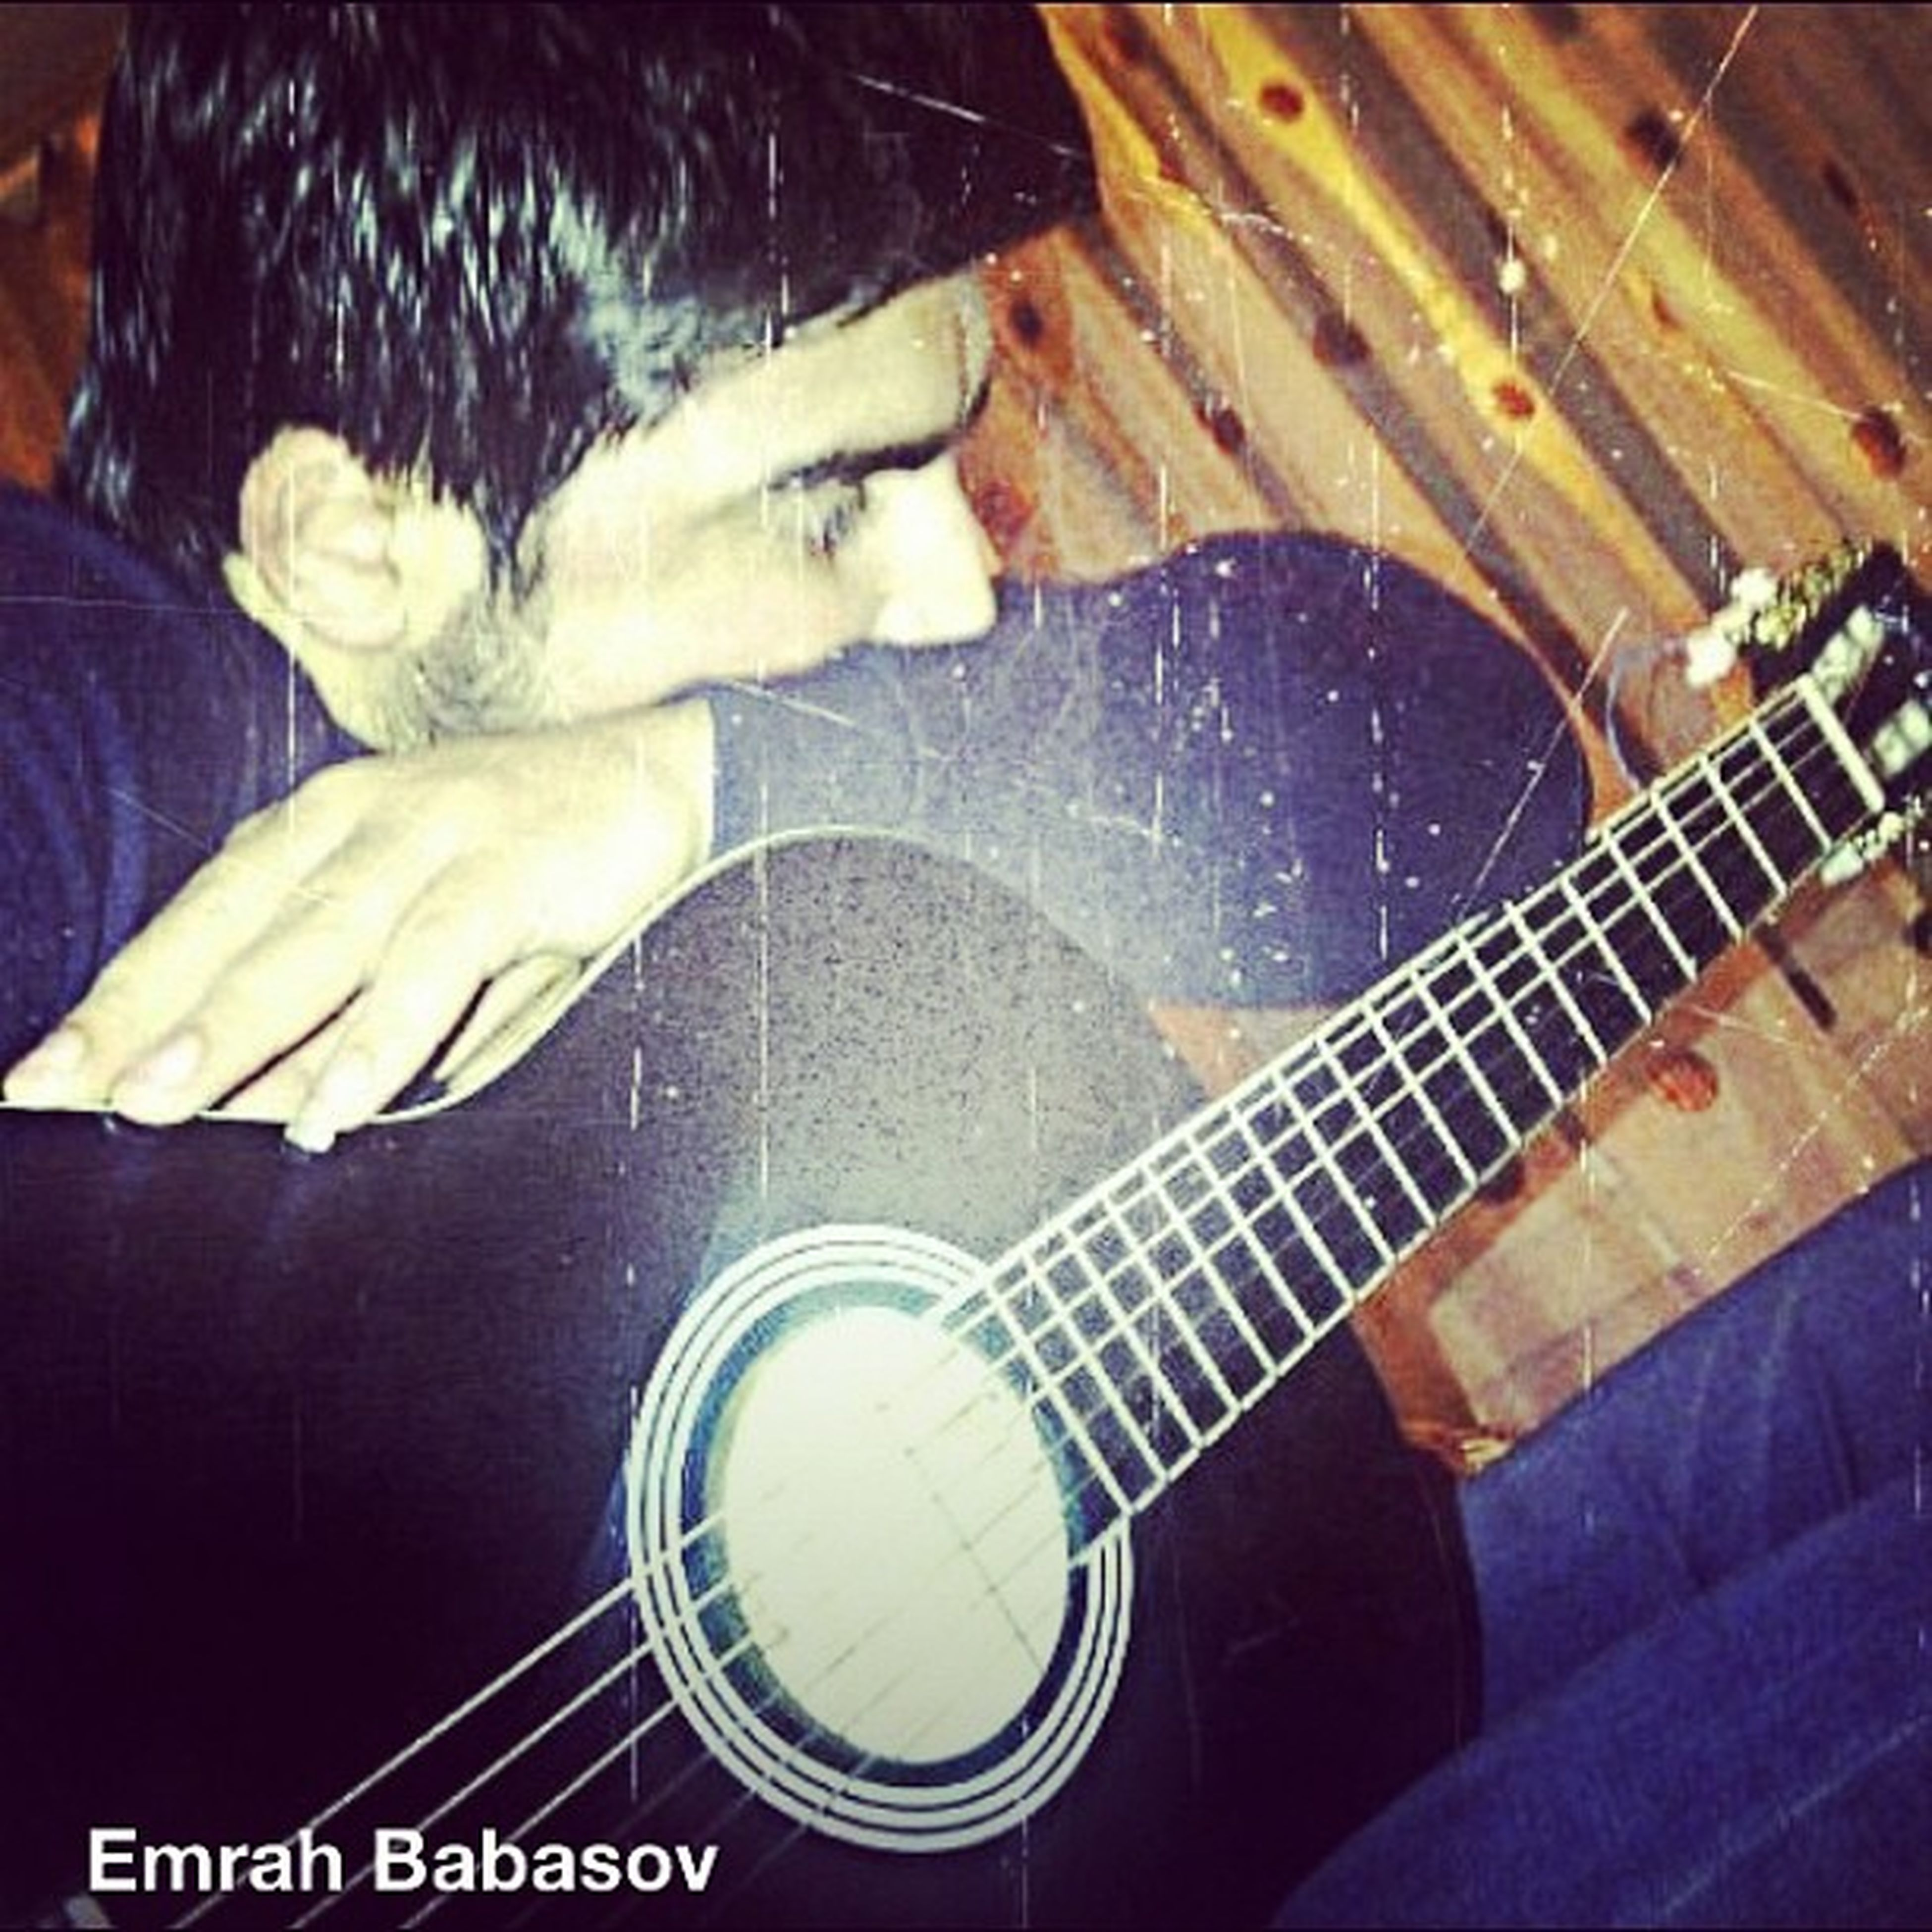 indoors, high angle view, lifestyles, men, leisure activity, sitting, music, occupation, casual clothing, musical instrument, technology, relaxation, working, guitar, arts culture and entertainment, playing, skill, holding